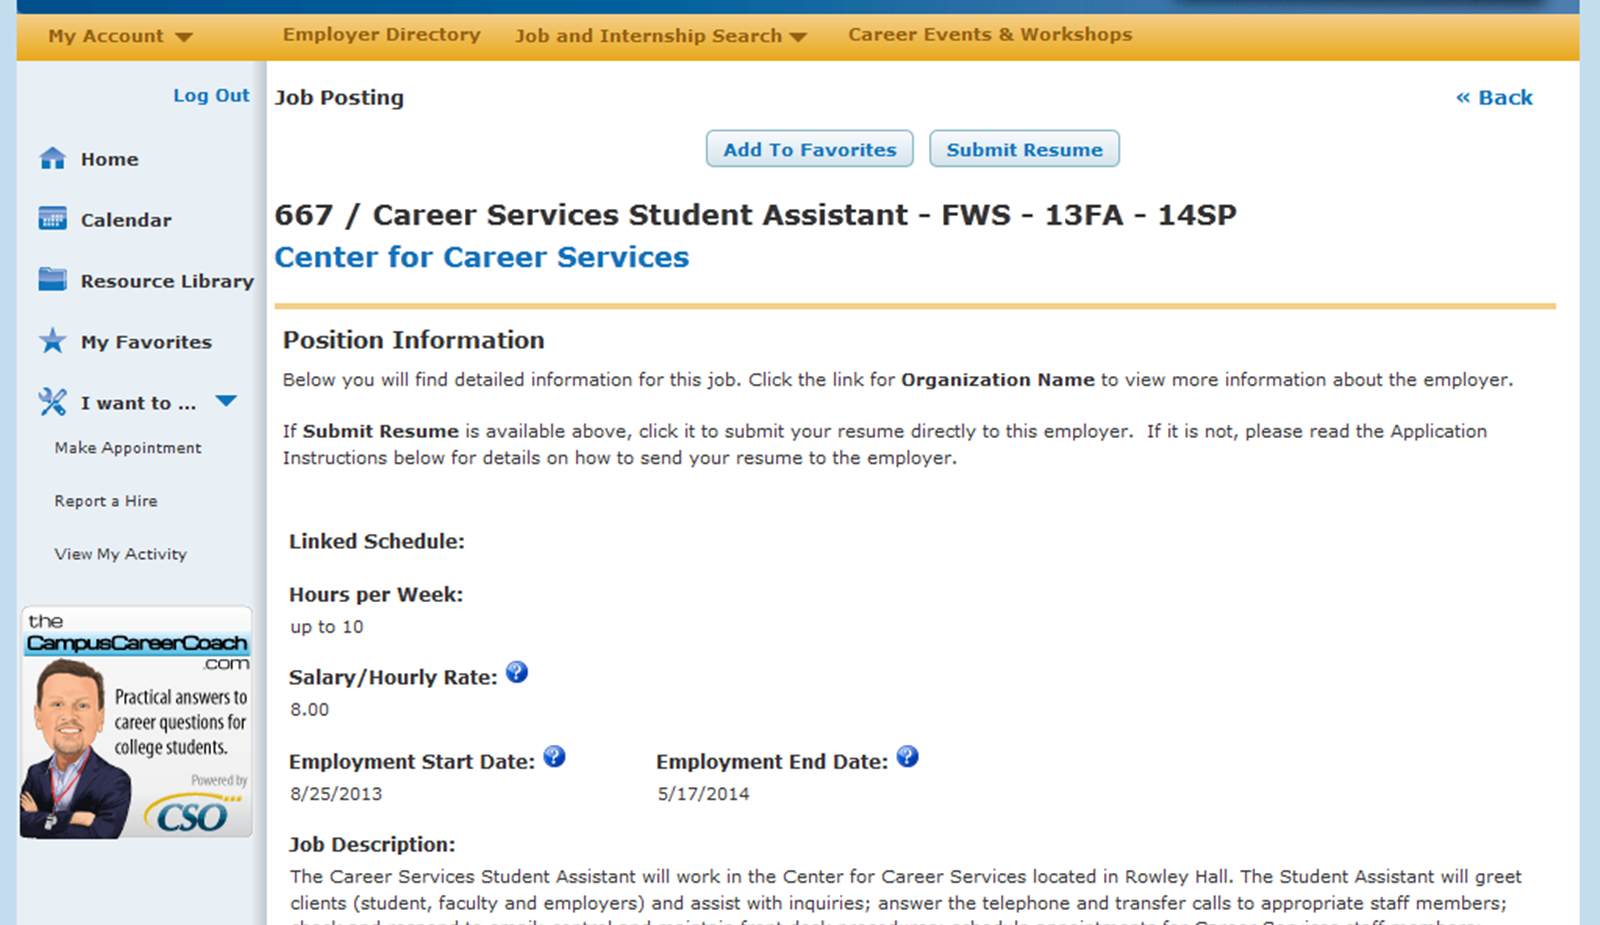 Applying to Positions If an employer has indicated students can apply through Jobs4Saints, the Submit Resume button will appear at the top of the job posting.